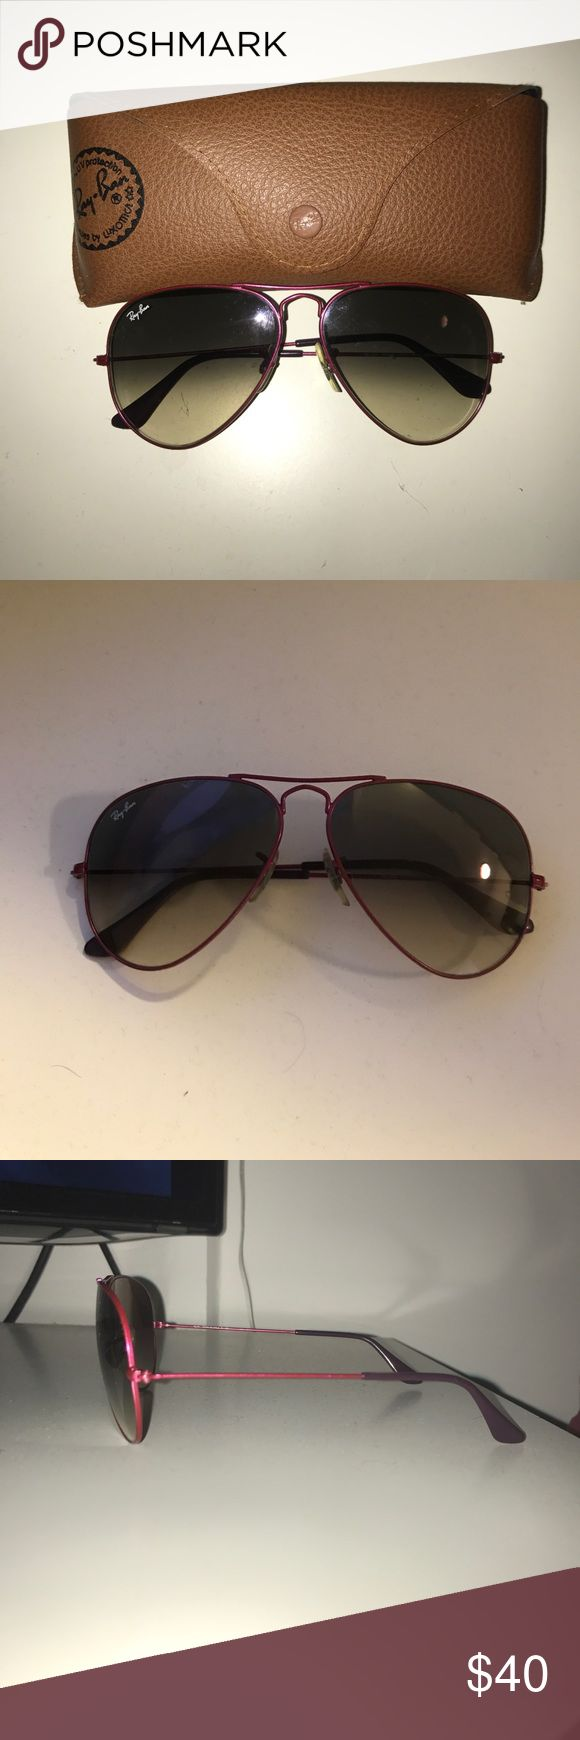 Ray Ban Pink Aviator Large Metal RB 3025 090/32 Ray Ban RB 3025 Aviator Large Metal in Pink. 090/32 58-14 2N. Tiny scratch on the right lens, but not visible when wearing by you or an audience! Fun & feminine take on the classic style. Happy Poshing! Case and unopened cloth come with sunglasses. Ray-Ban Accessories Sunglasses